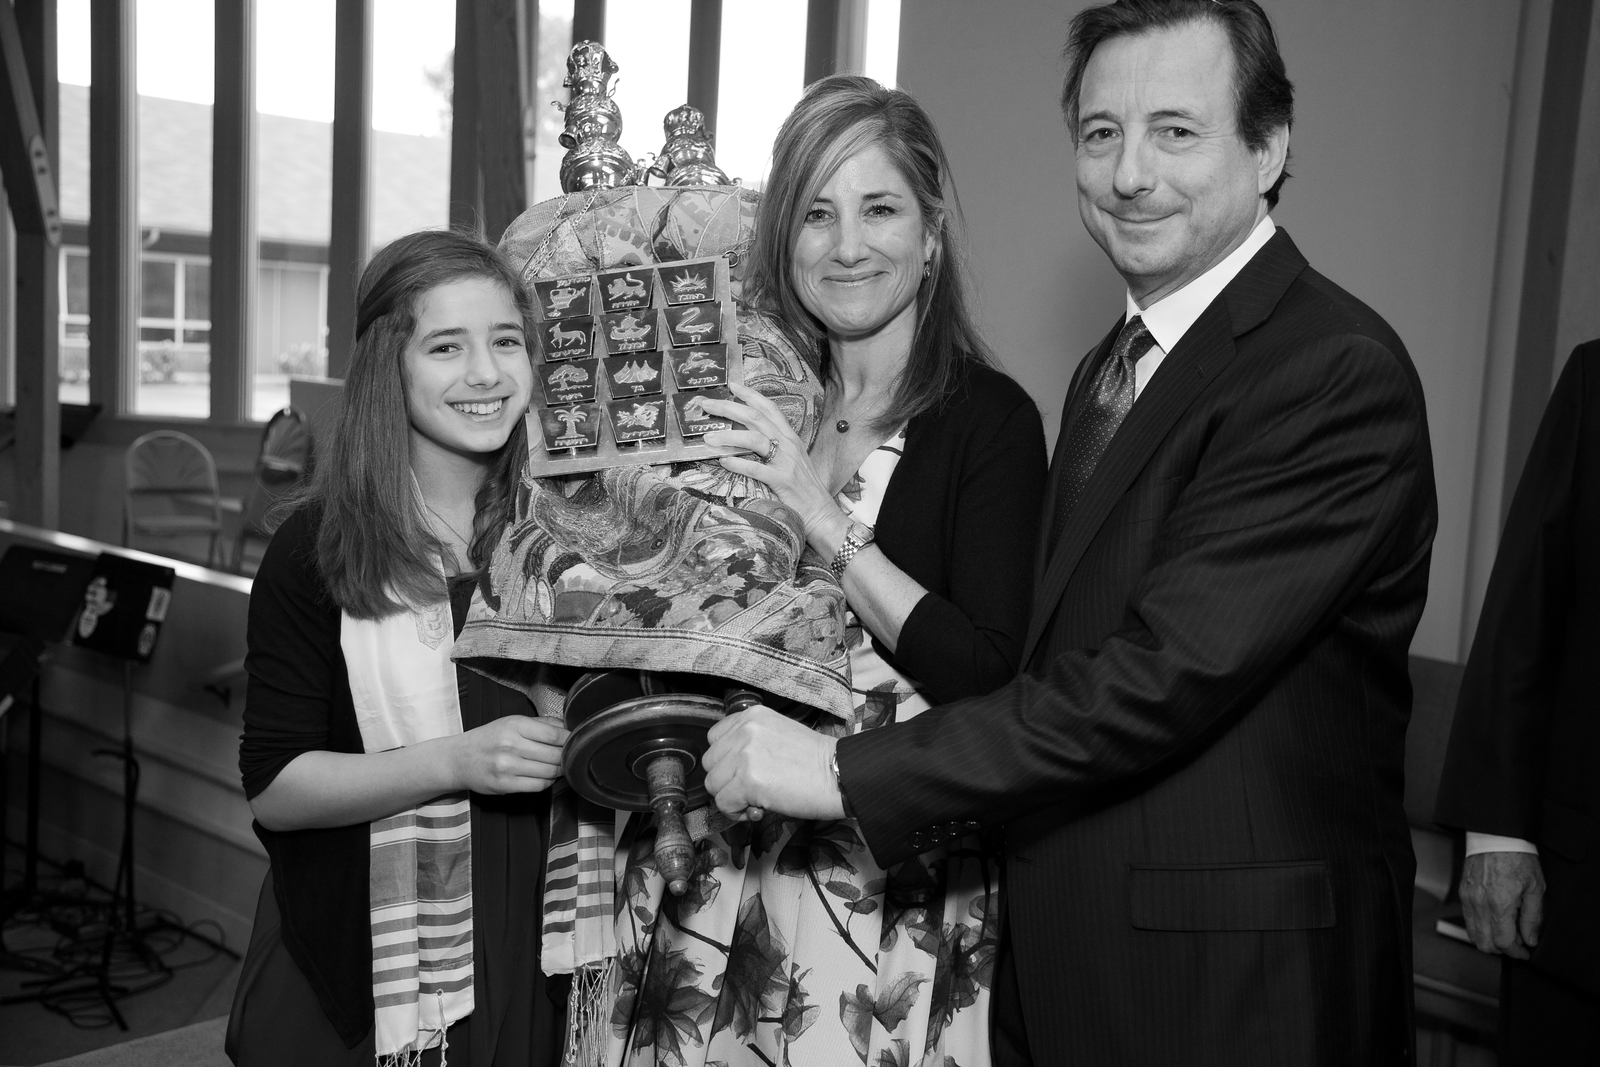 Patty and family at her daughter's bat mitzvah.